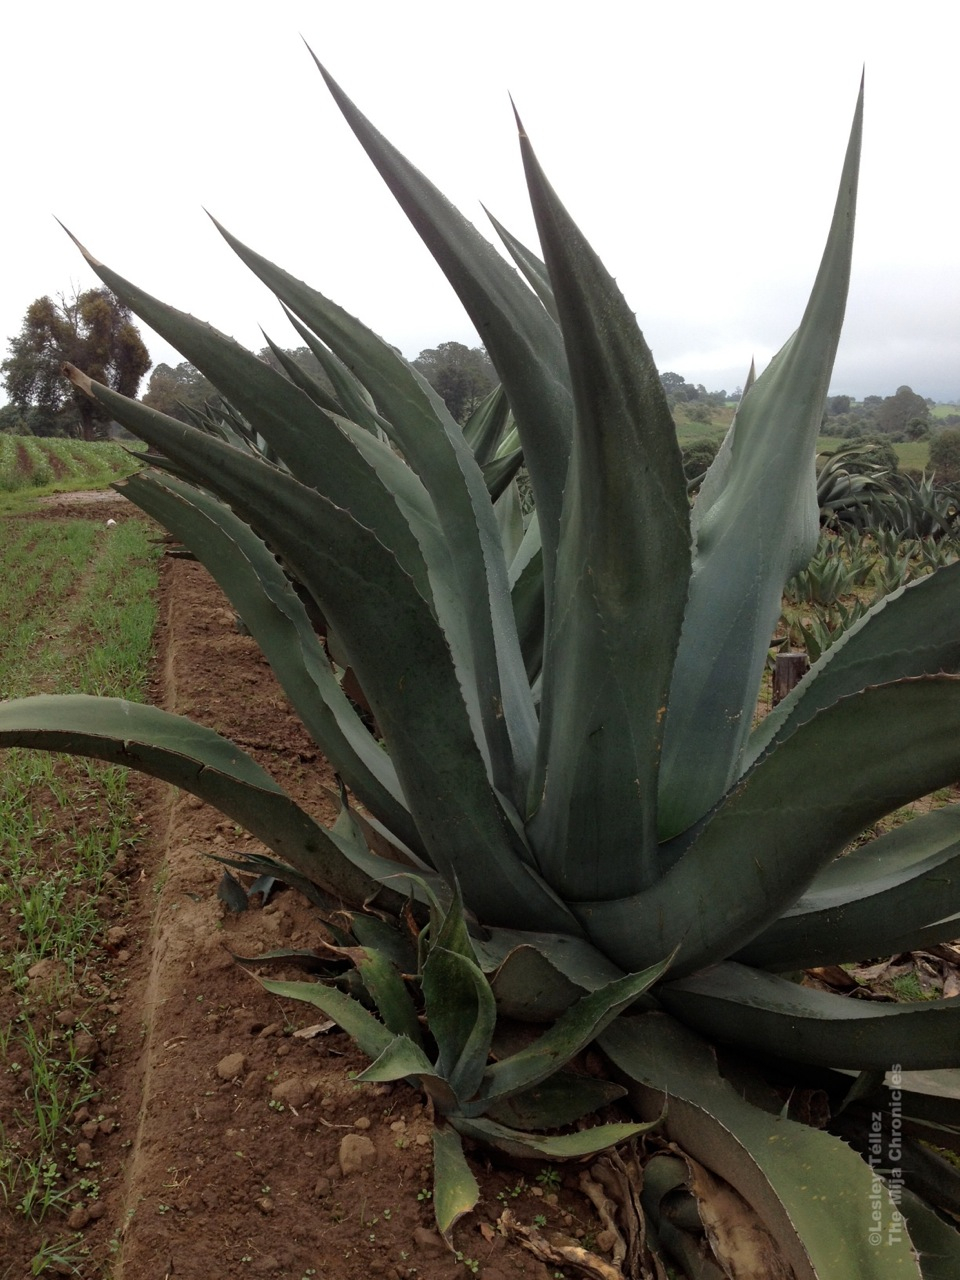 Drinking Homemade Pulque And Visiting A Real Pulque Farm